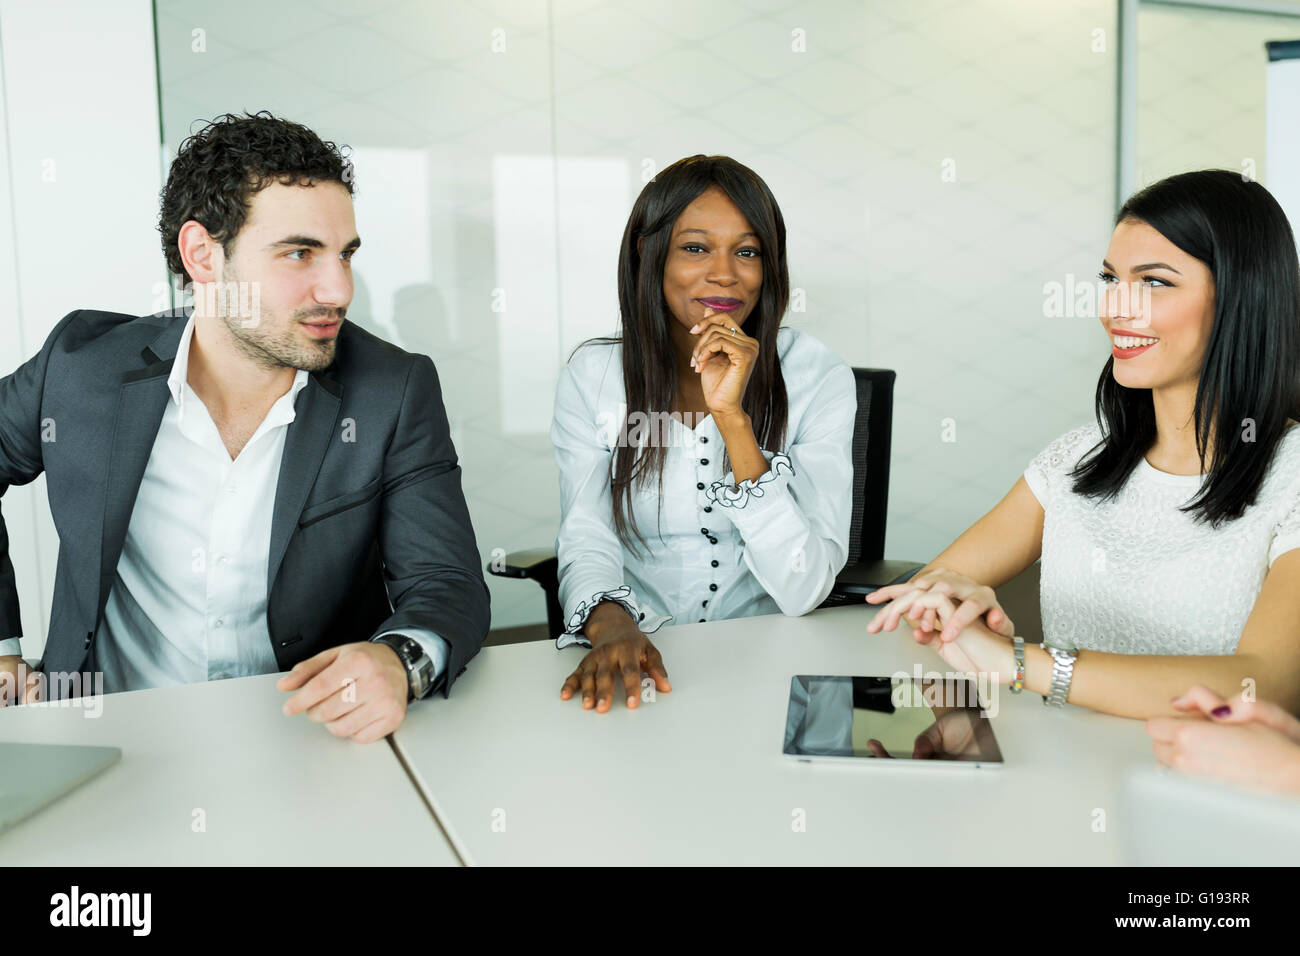 Business talk while sitting at a table and discussing results - Stock Image